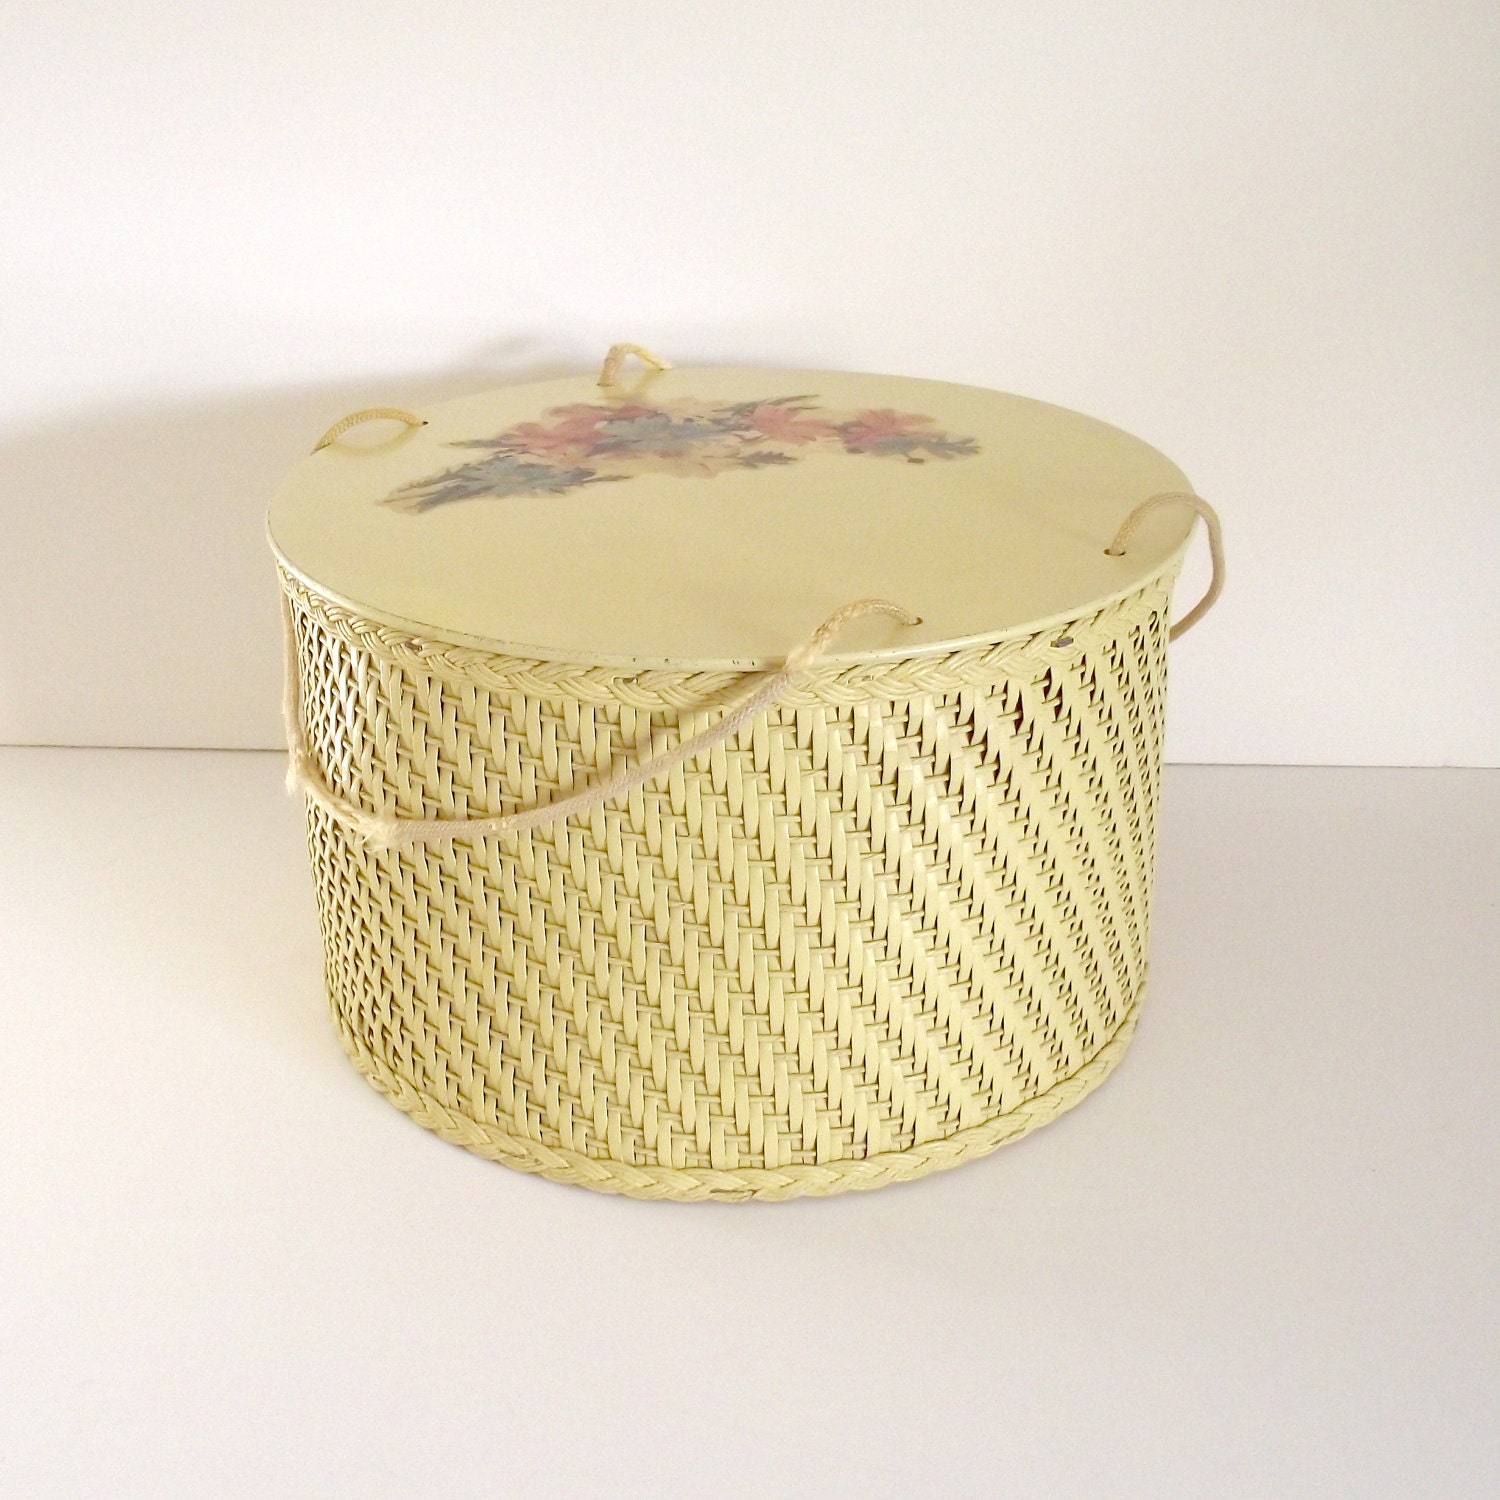 Vintage Wicker and Wood Sewing Box or Basket